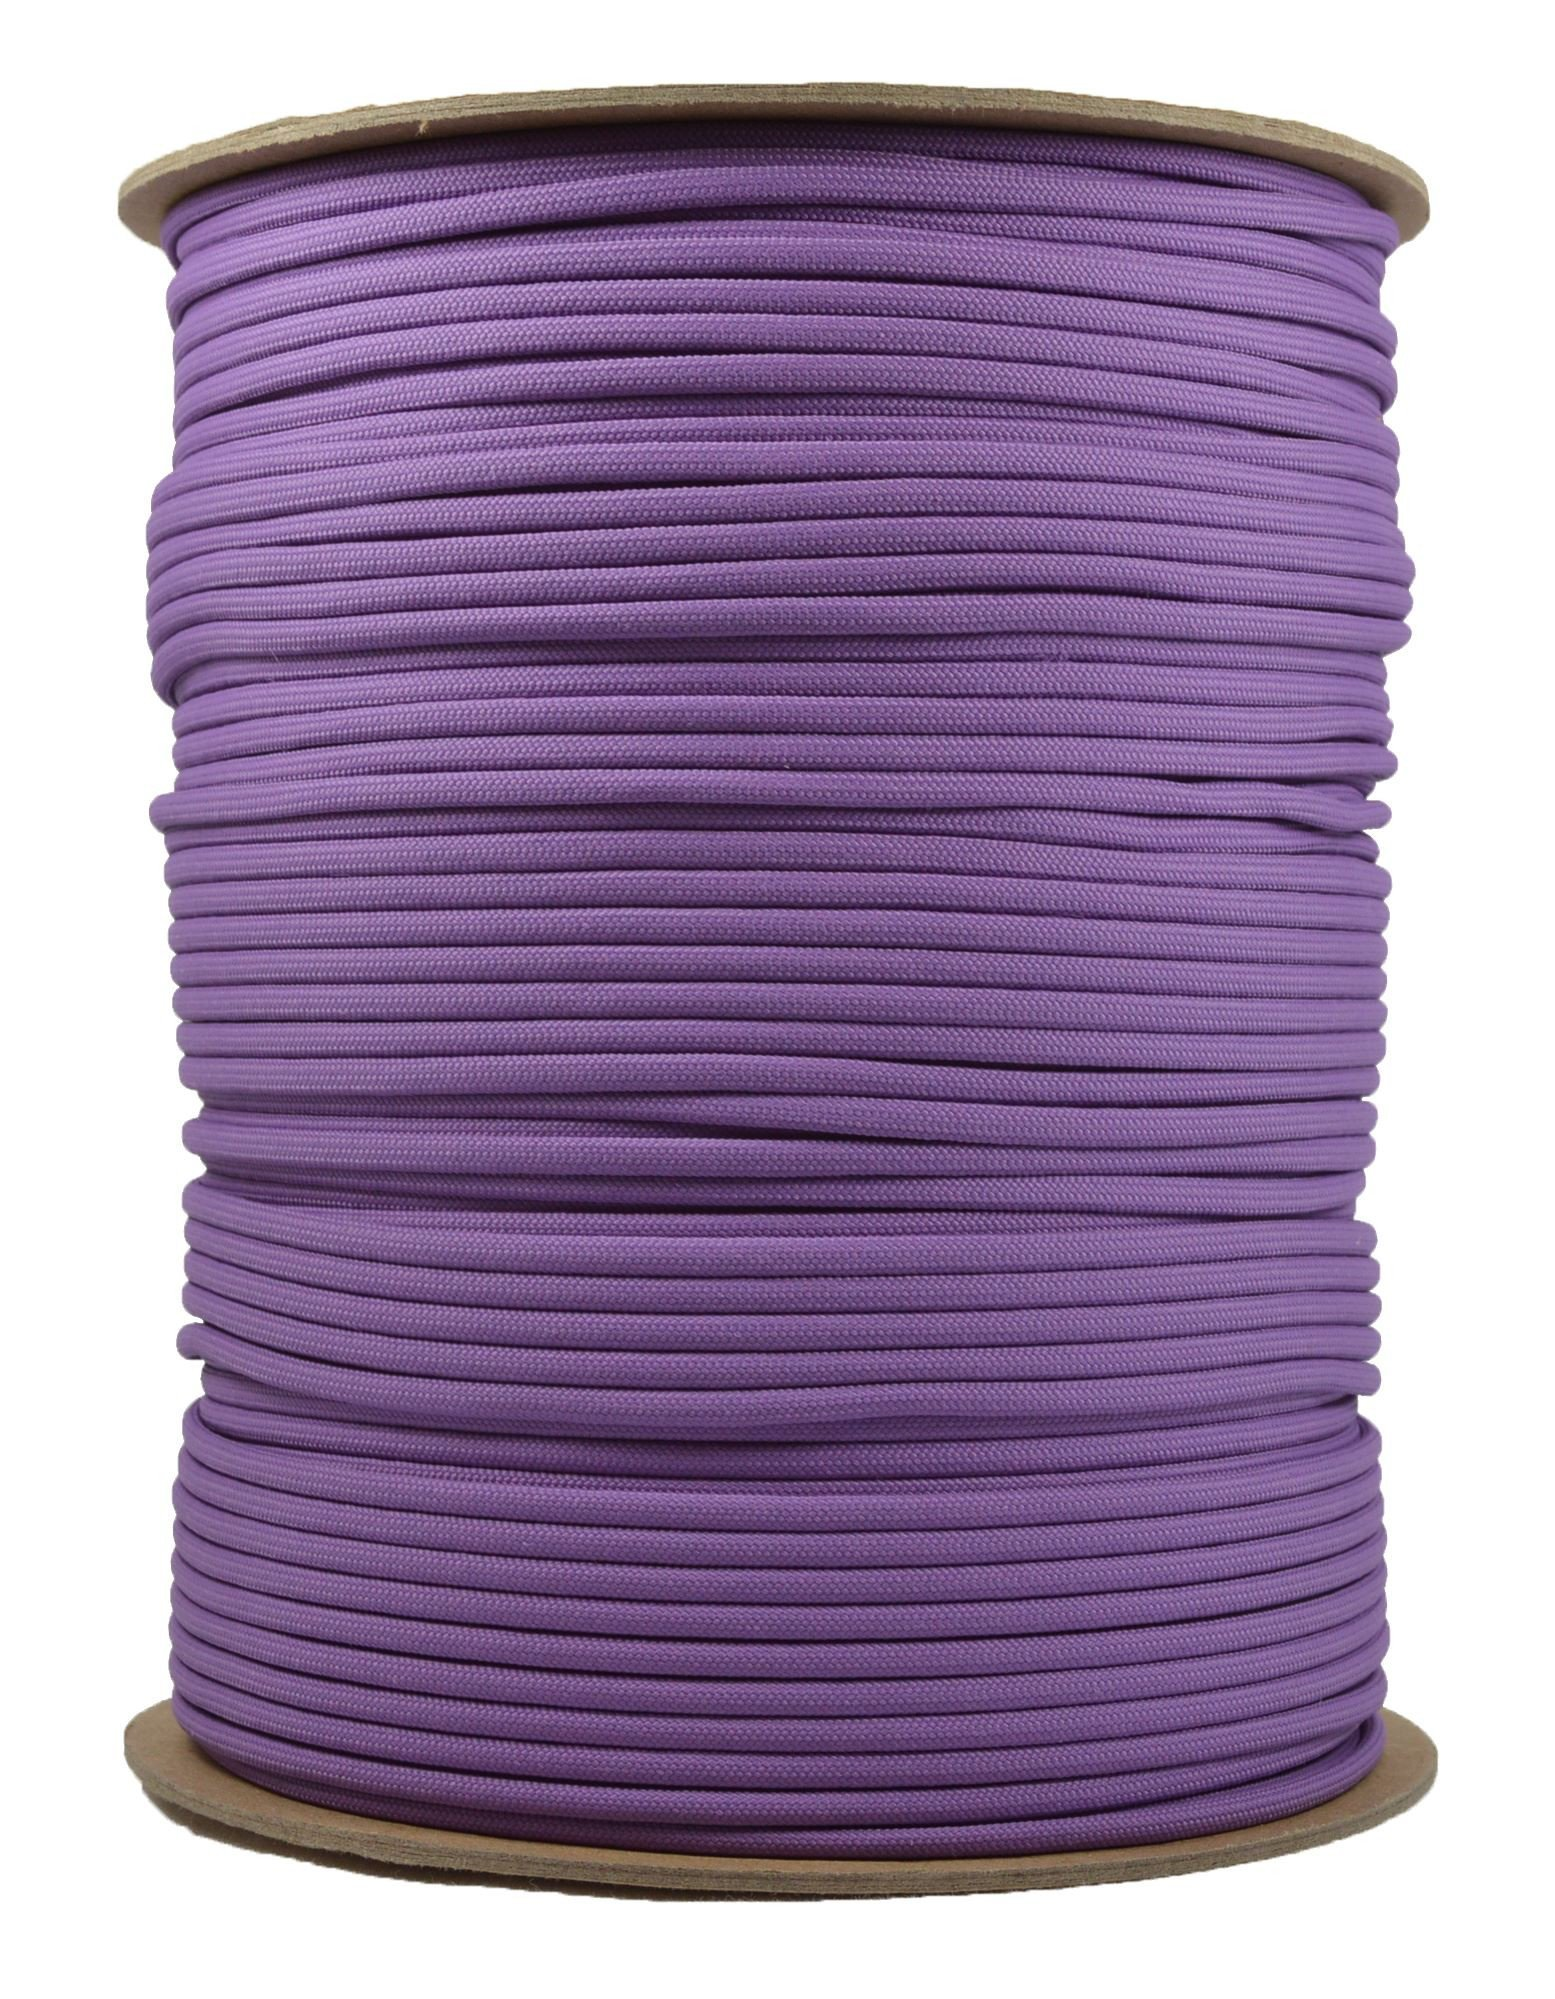 Solid Colors Paracord - Type III Parachute Cord - Lilac - 1000 Foot Spool